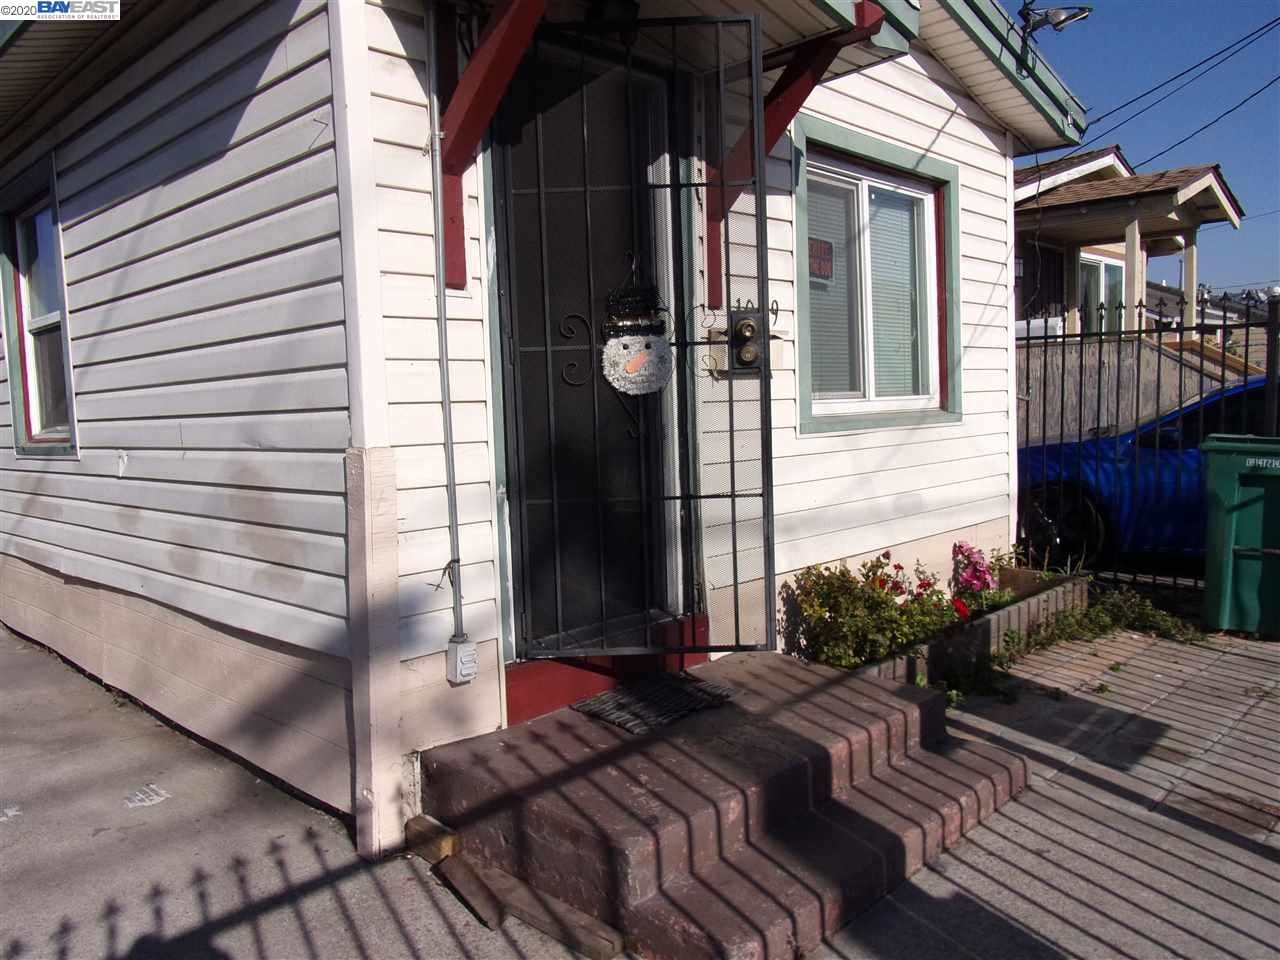 1009 72nd Ave, Oakland, CA 94621-3240 - MLS#: 40921858